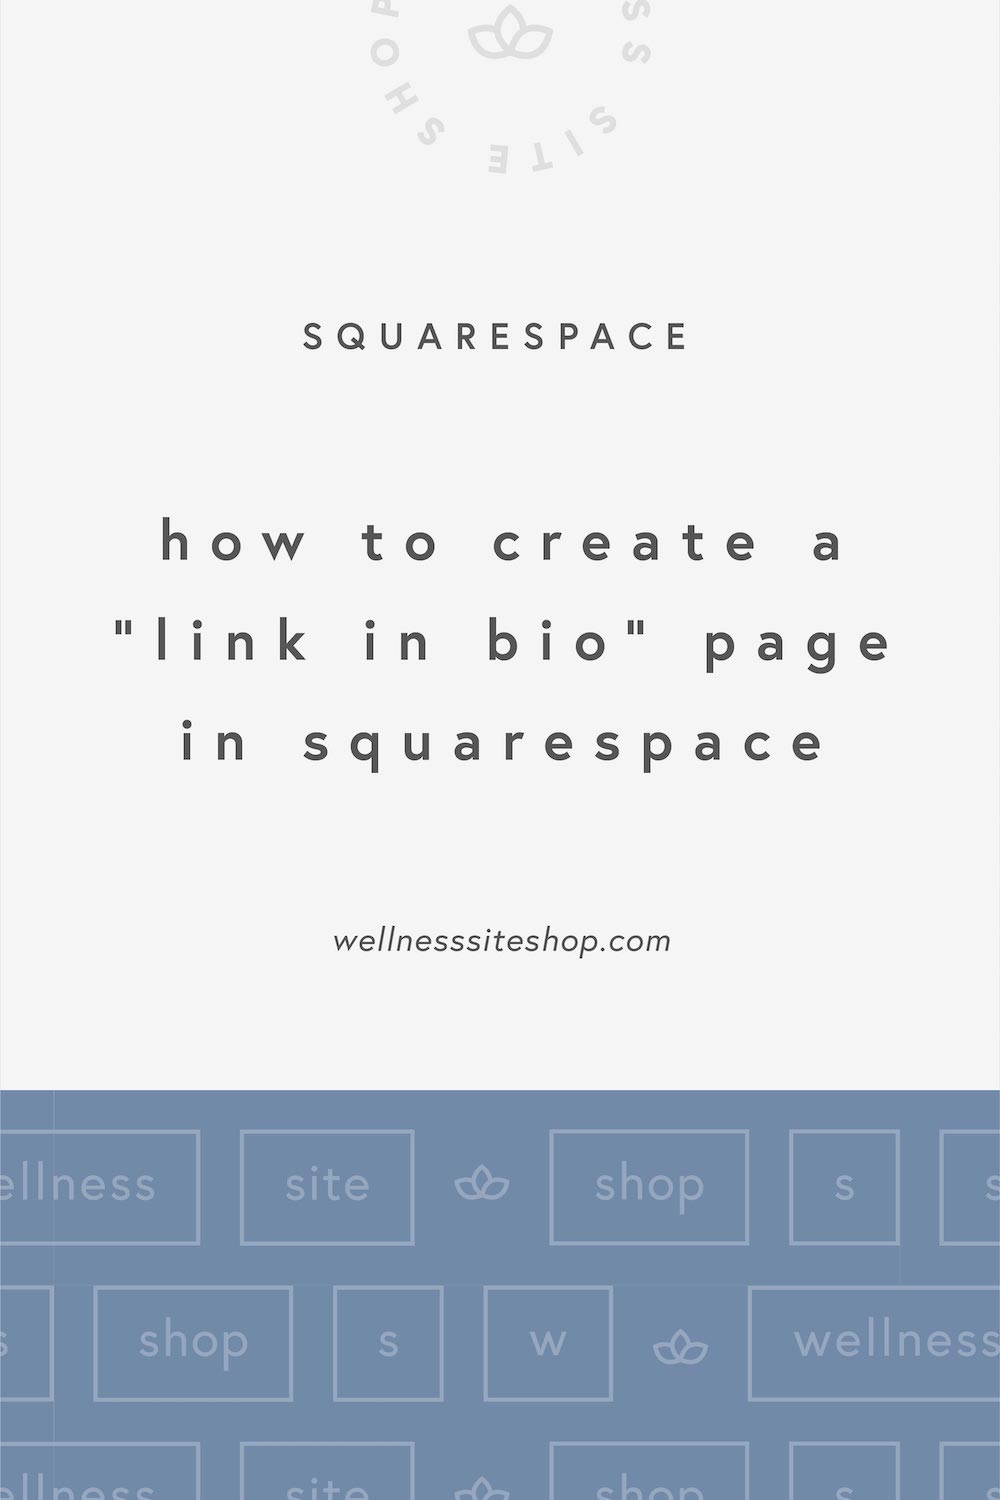 How to create a link in bio page in squarespace**.jpg